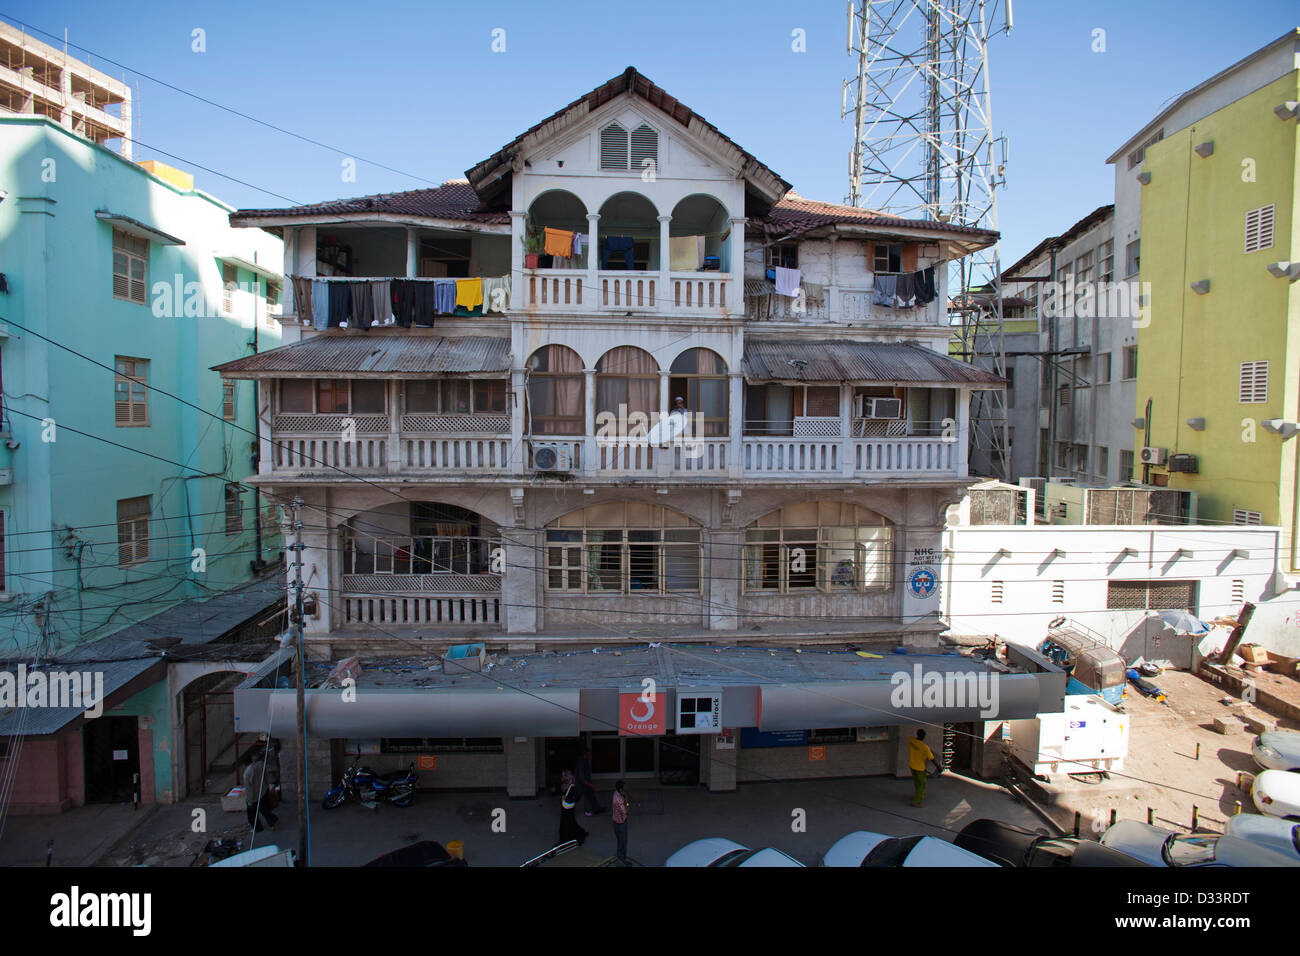 A 1930s Indian built house in downtown Dar es Salaam, Tanzania. - Stock Image